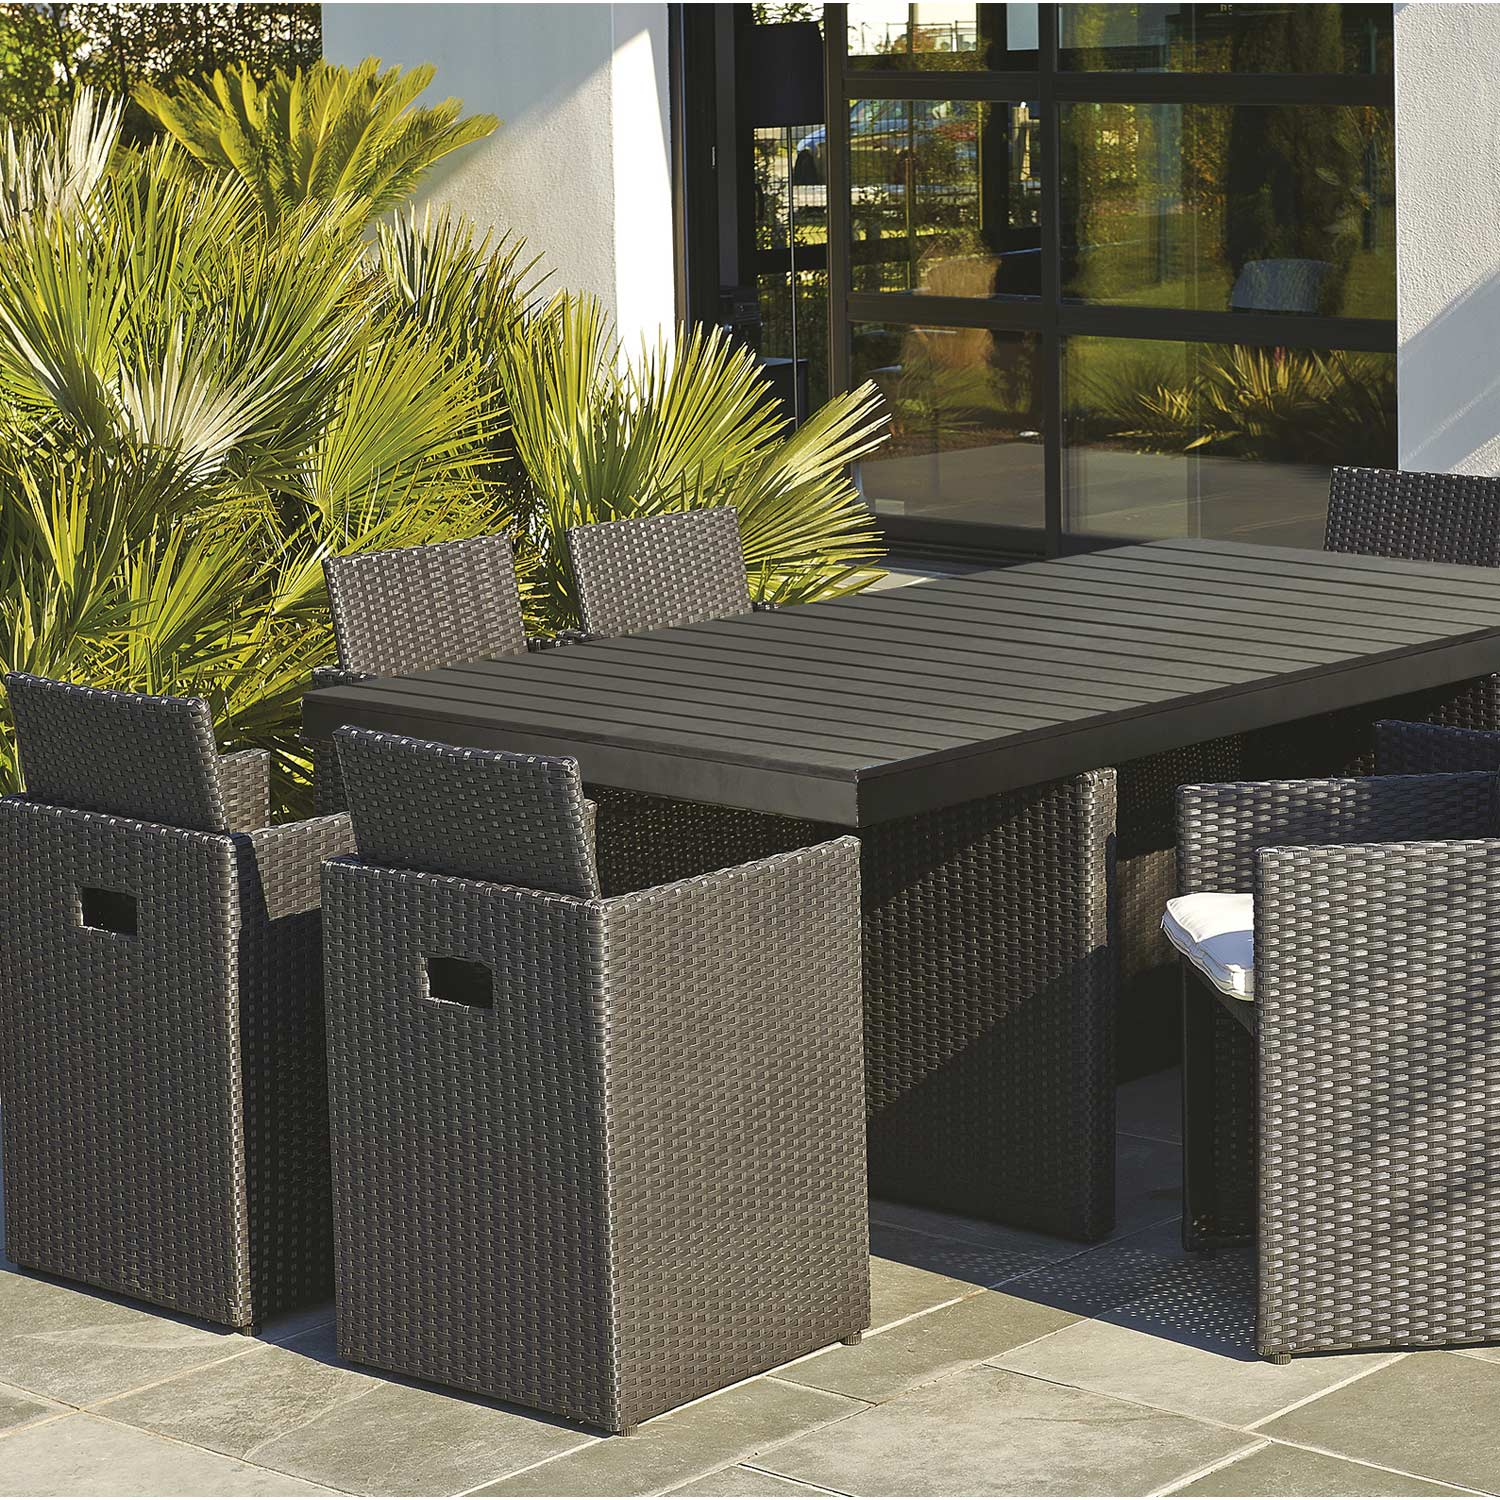 Salon de jardin Encastrable rsine tresse noir 1 table  8 fauteuils  Leroy Merlin